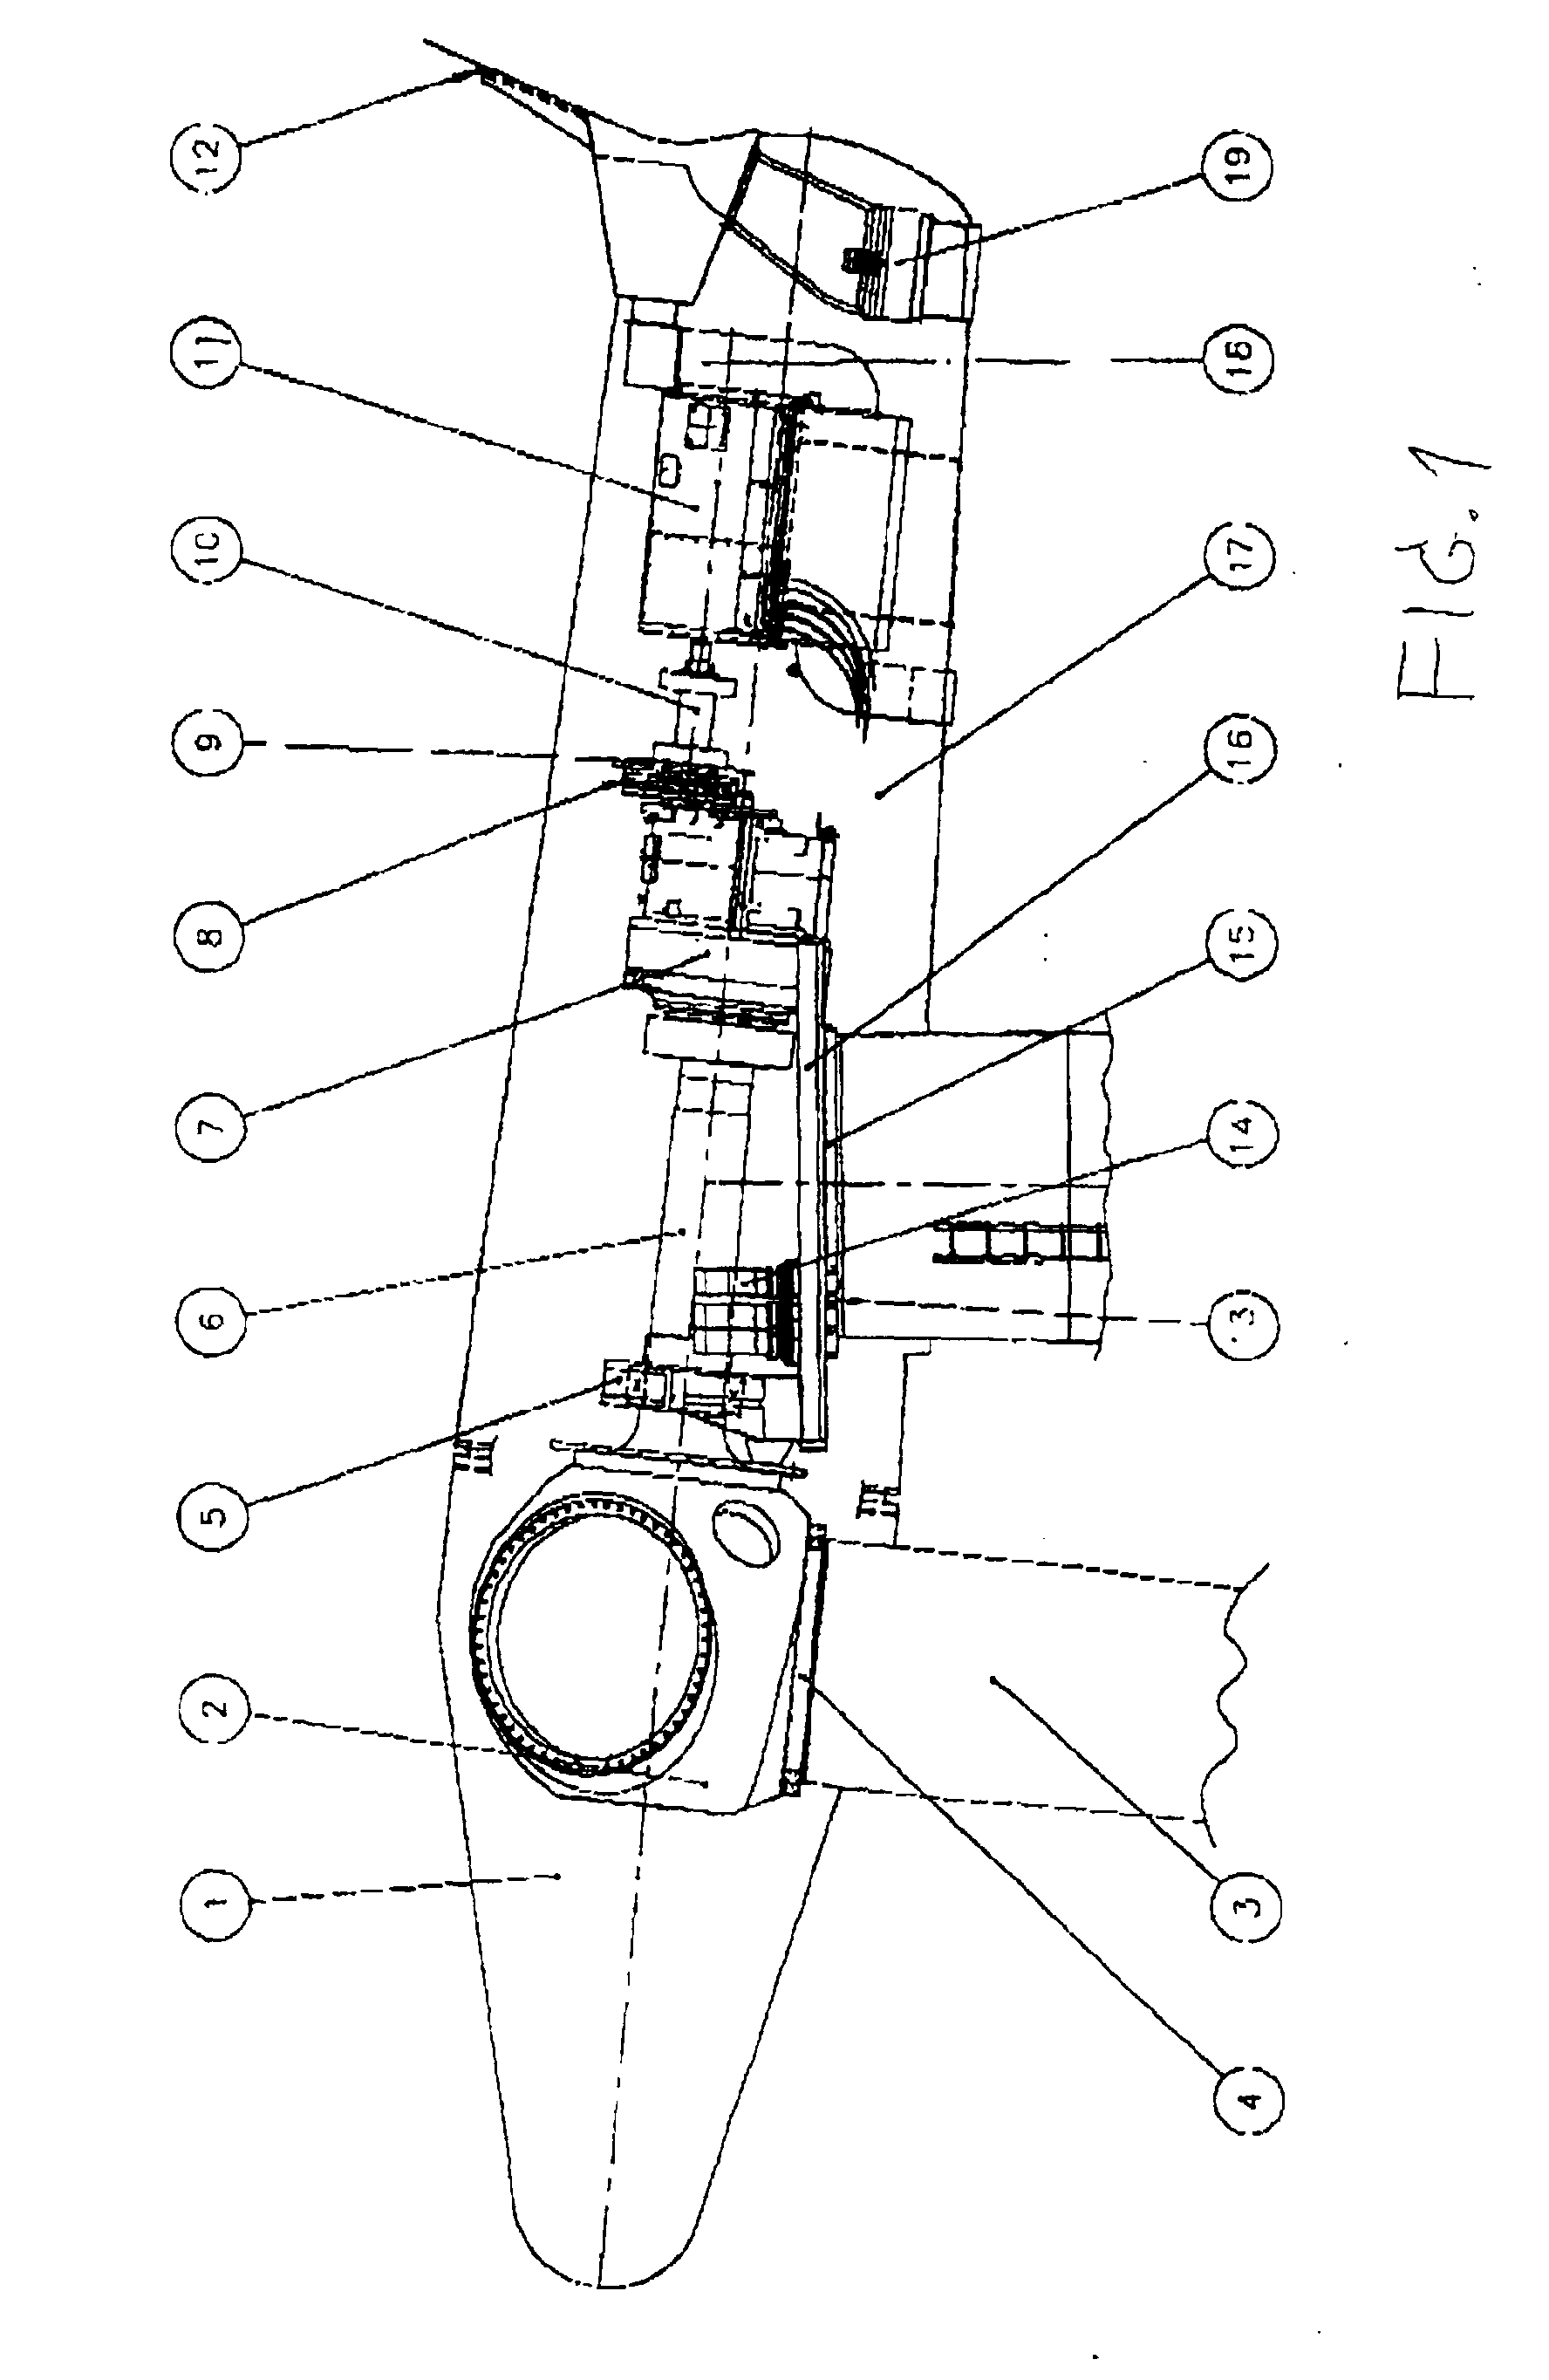 US6902447 besides Search likewise Aermotor Windmill Diagram furthermore Synchronization gear likewise EP1101936A2. on windmill gearbox